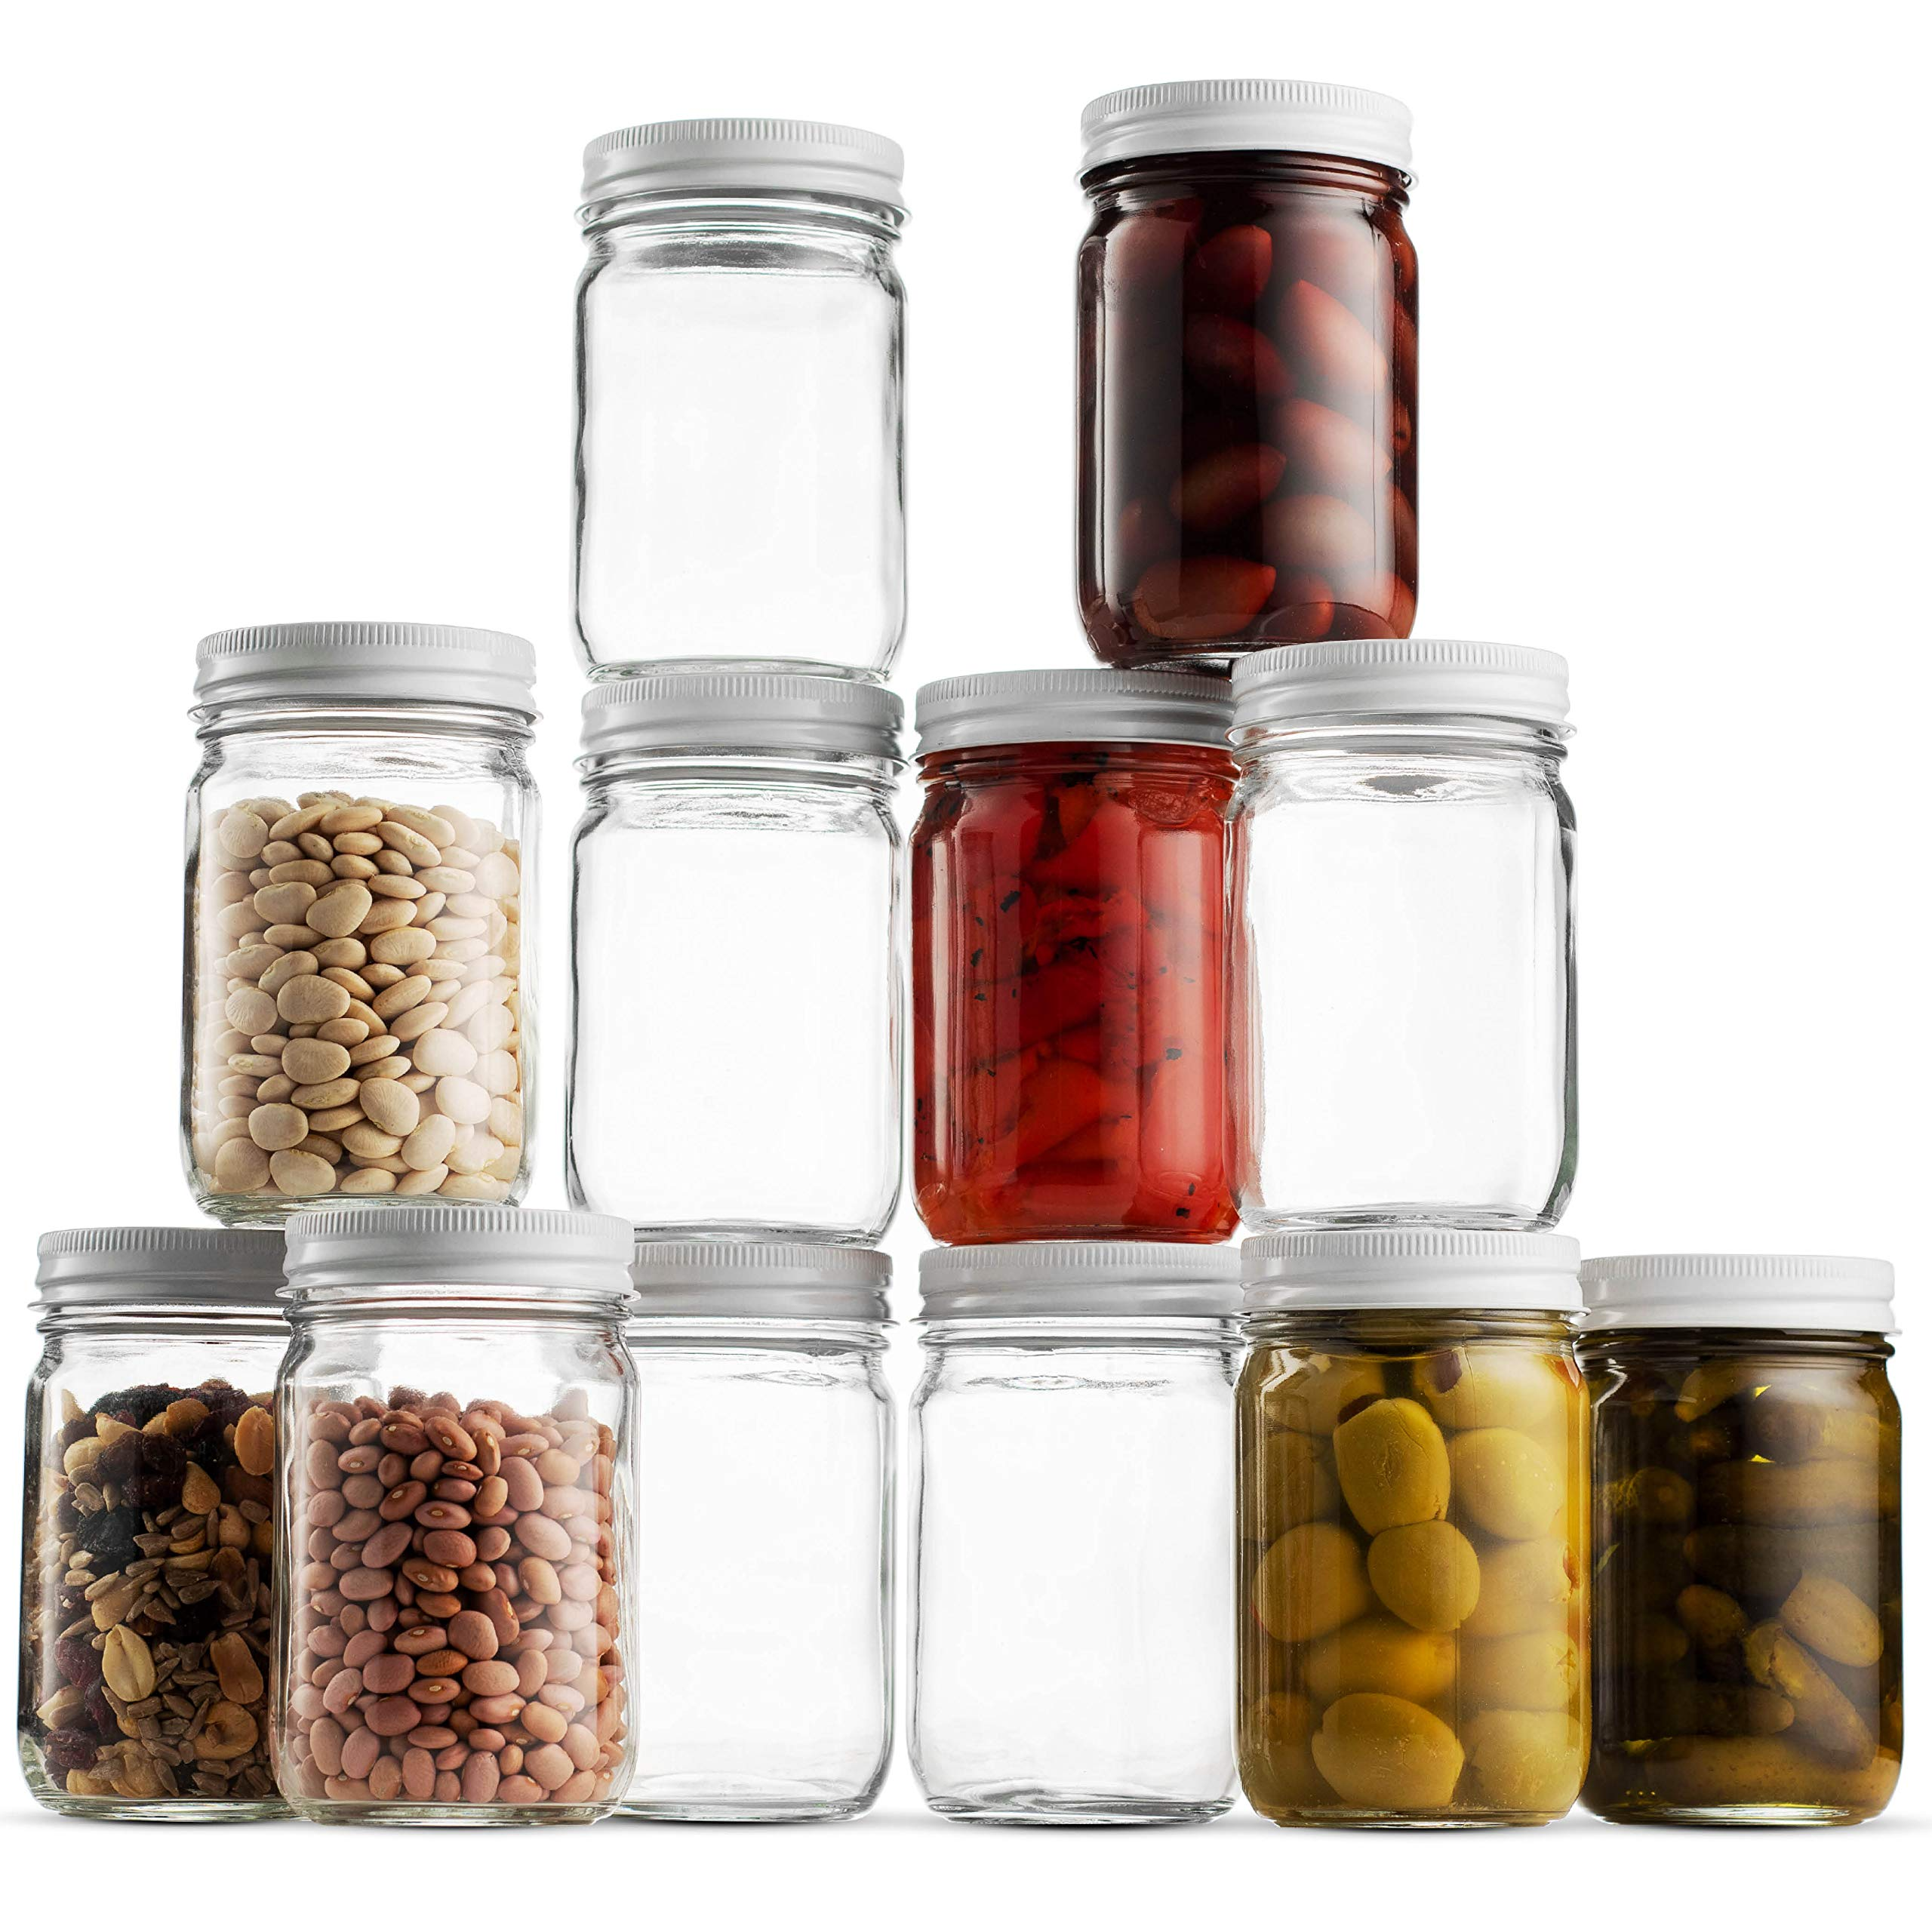 Glass Mason Jars (12 Pack) - 12 Ounce Regular Mouth Jam Jelly Jars, Metal Airtight Lid, USDA Approved Dishwasher Safe USA Made Pickling, Preserving, Decorating, Canning Jar, Craft and Dry Food Storage